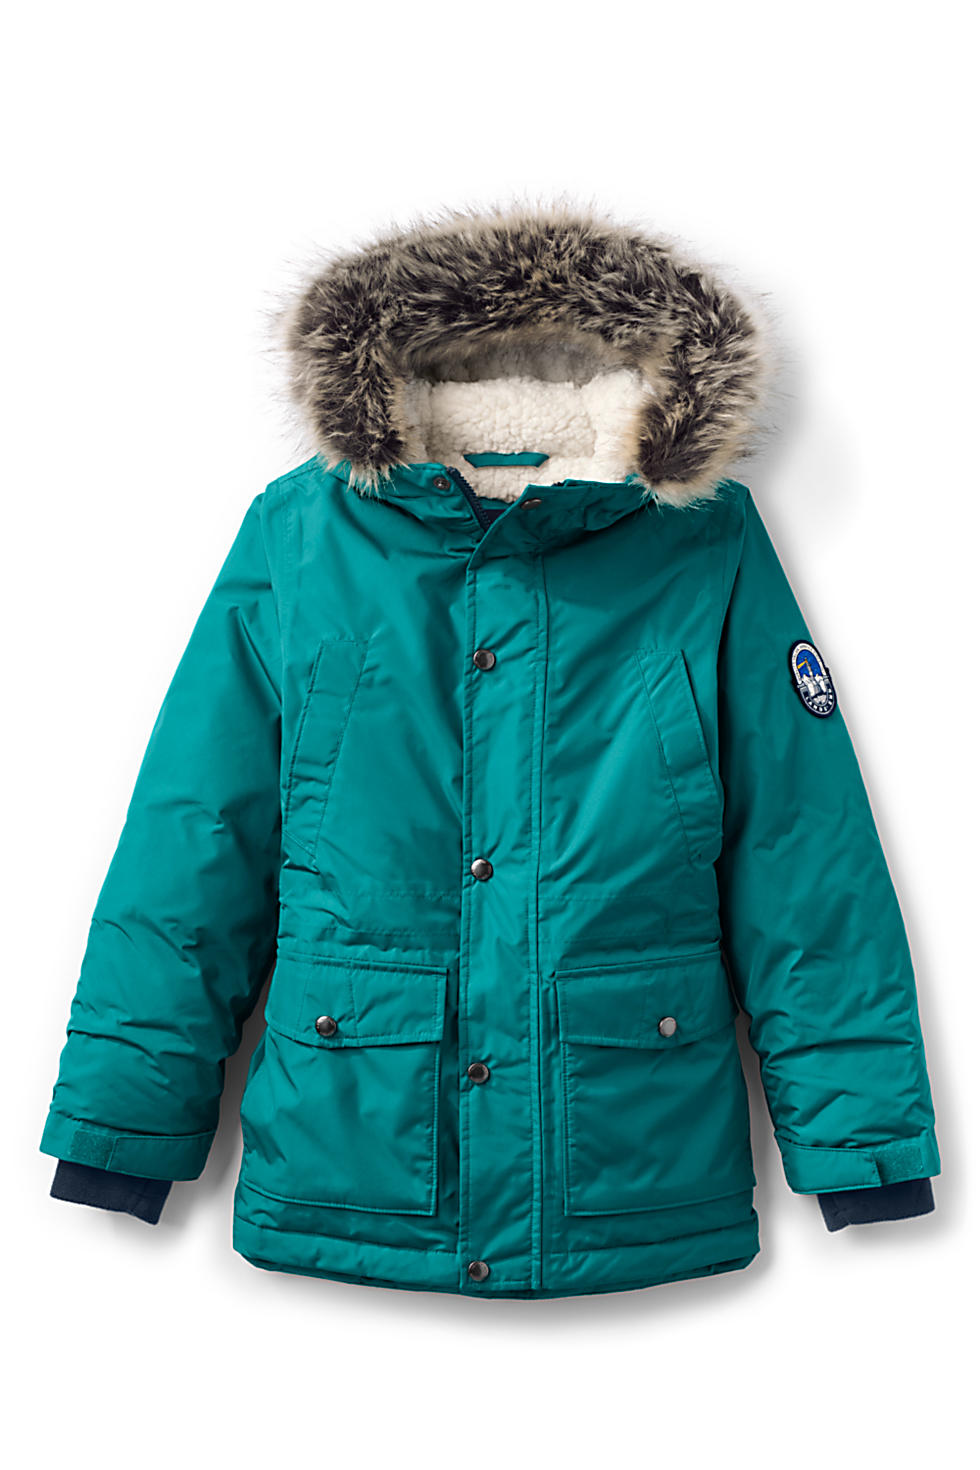 Lands End Kids Expedition Down Winter Parka